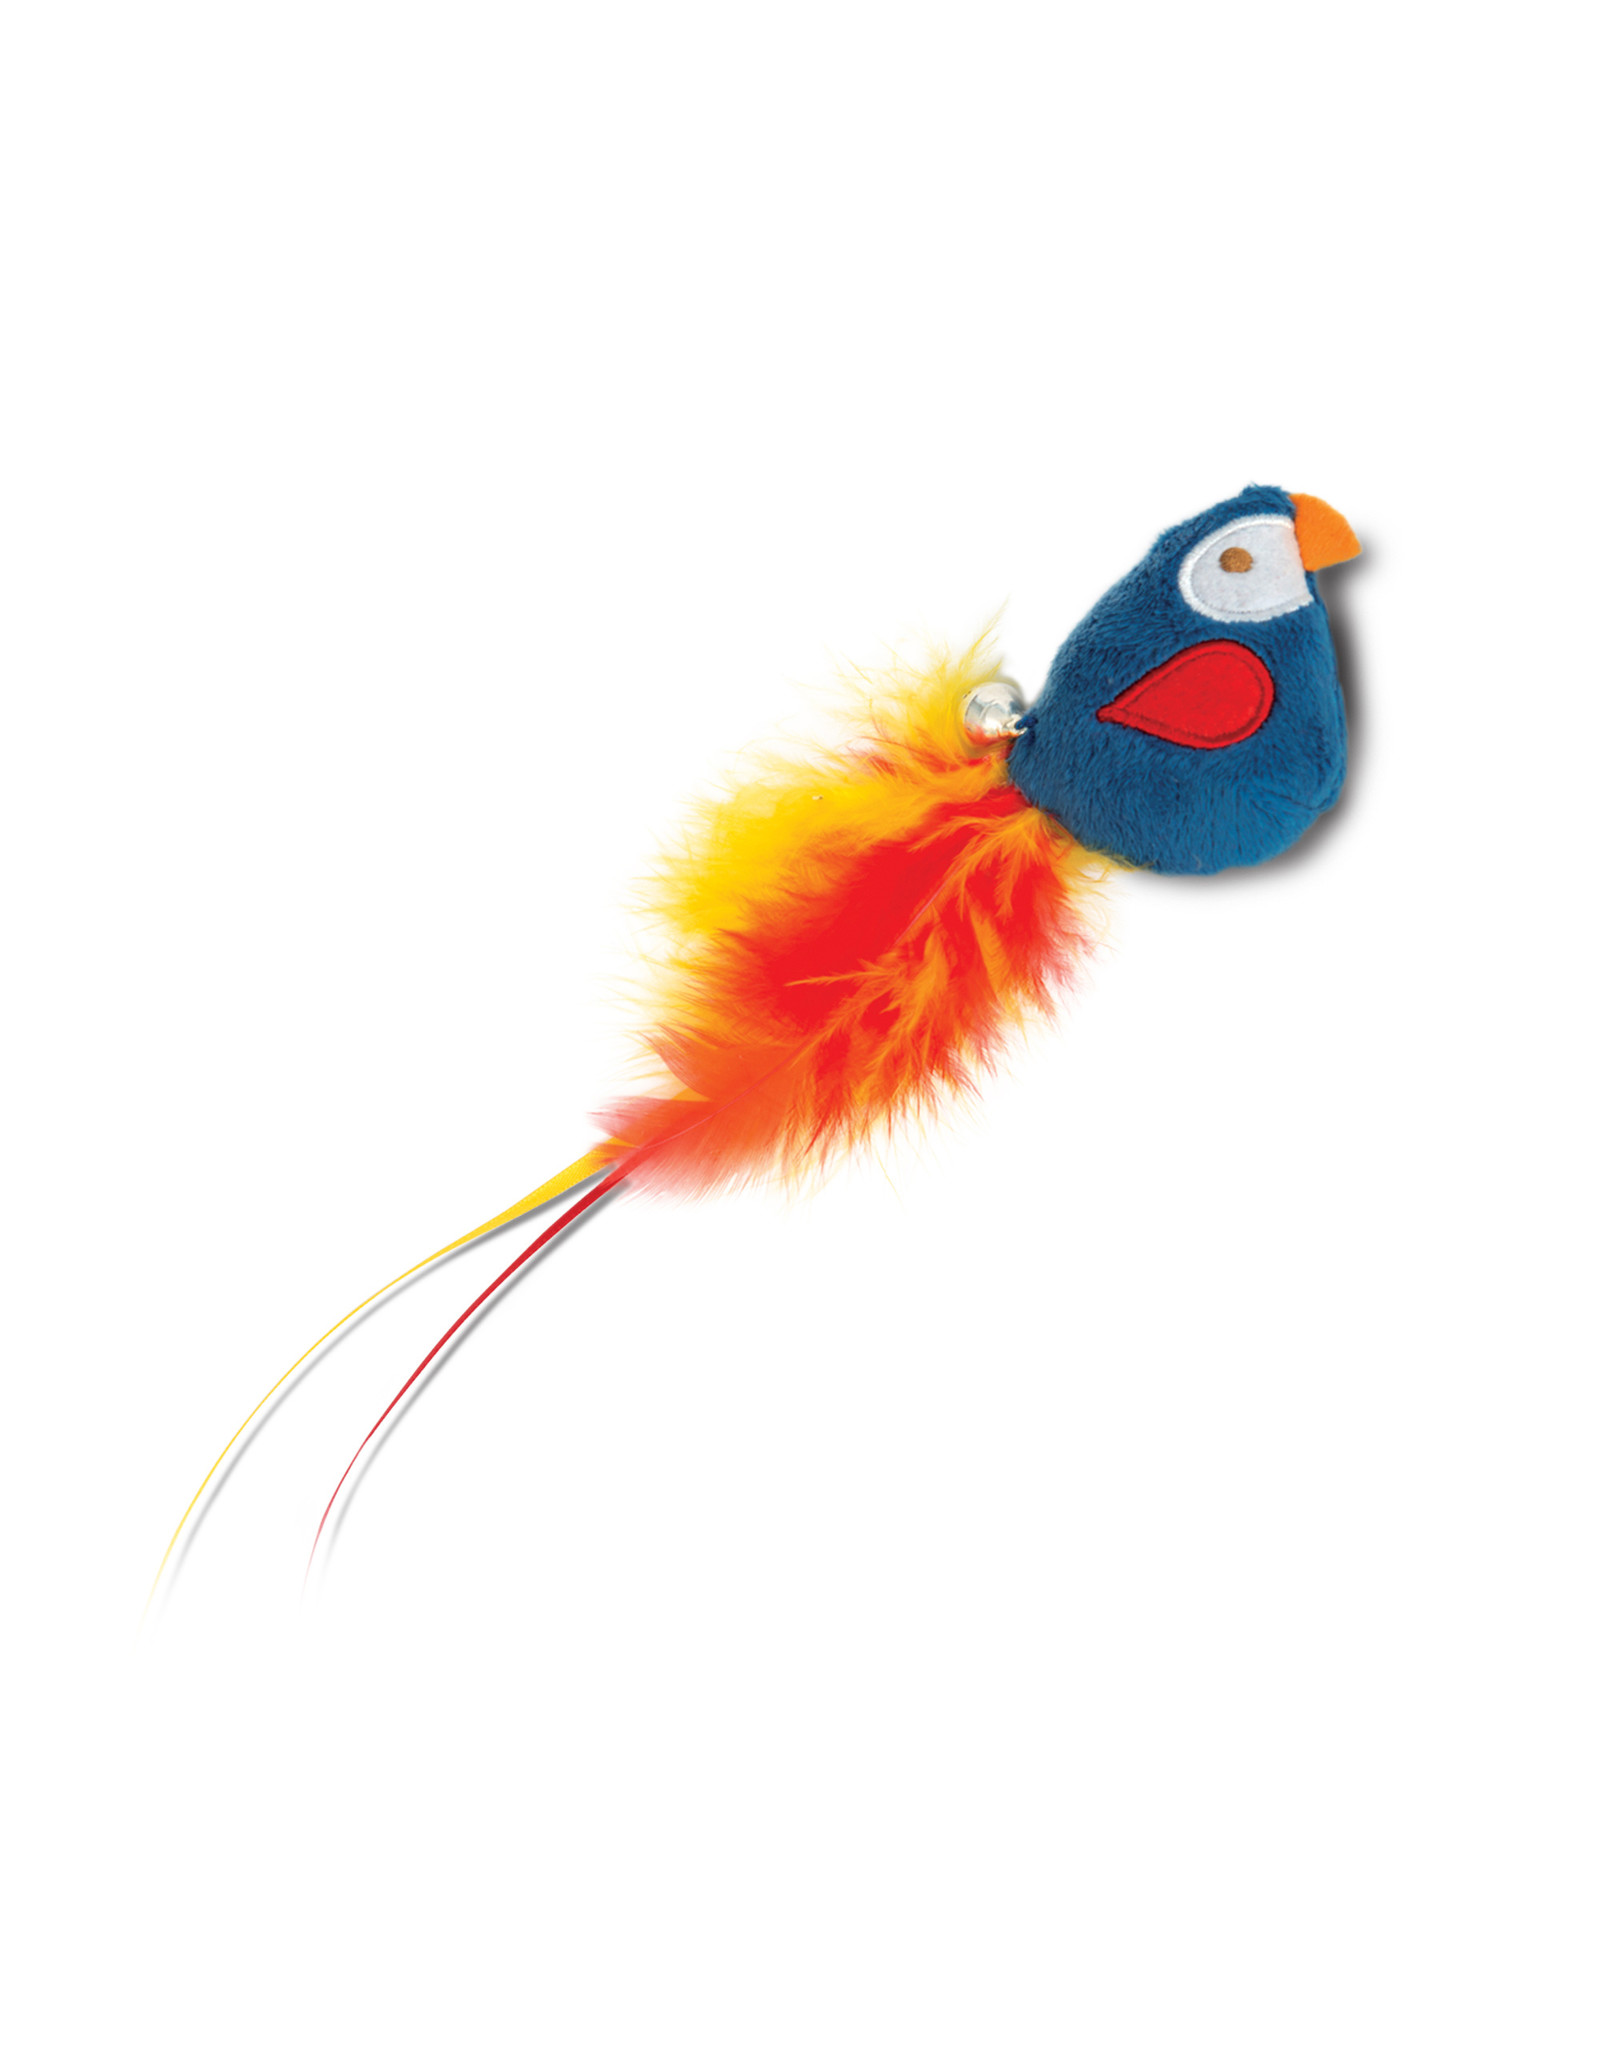 CT - Catit 2.0 Catit Play Pirates Catnip Toy, Parrot